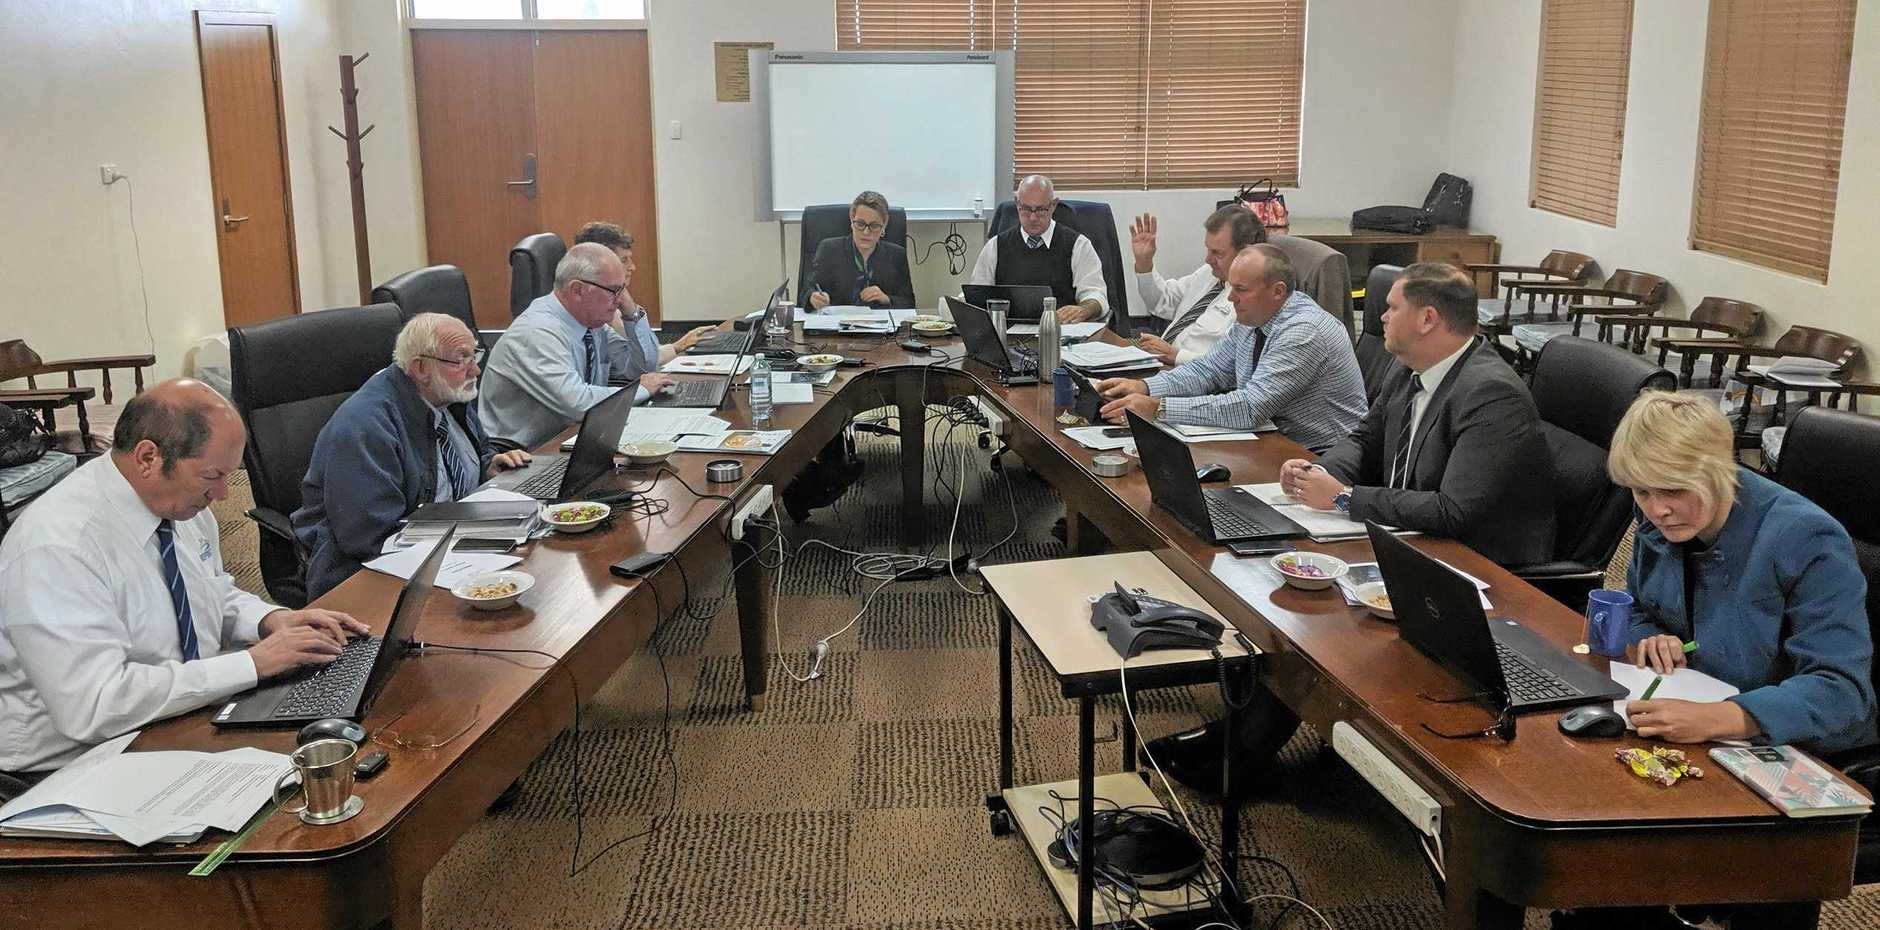 COUNTING COINS: North Burnett Regional Council's Budget Meeting in Mundubbera on Wednesday, July 17.